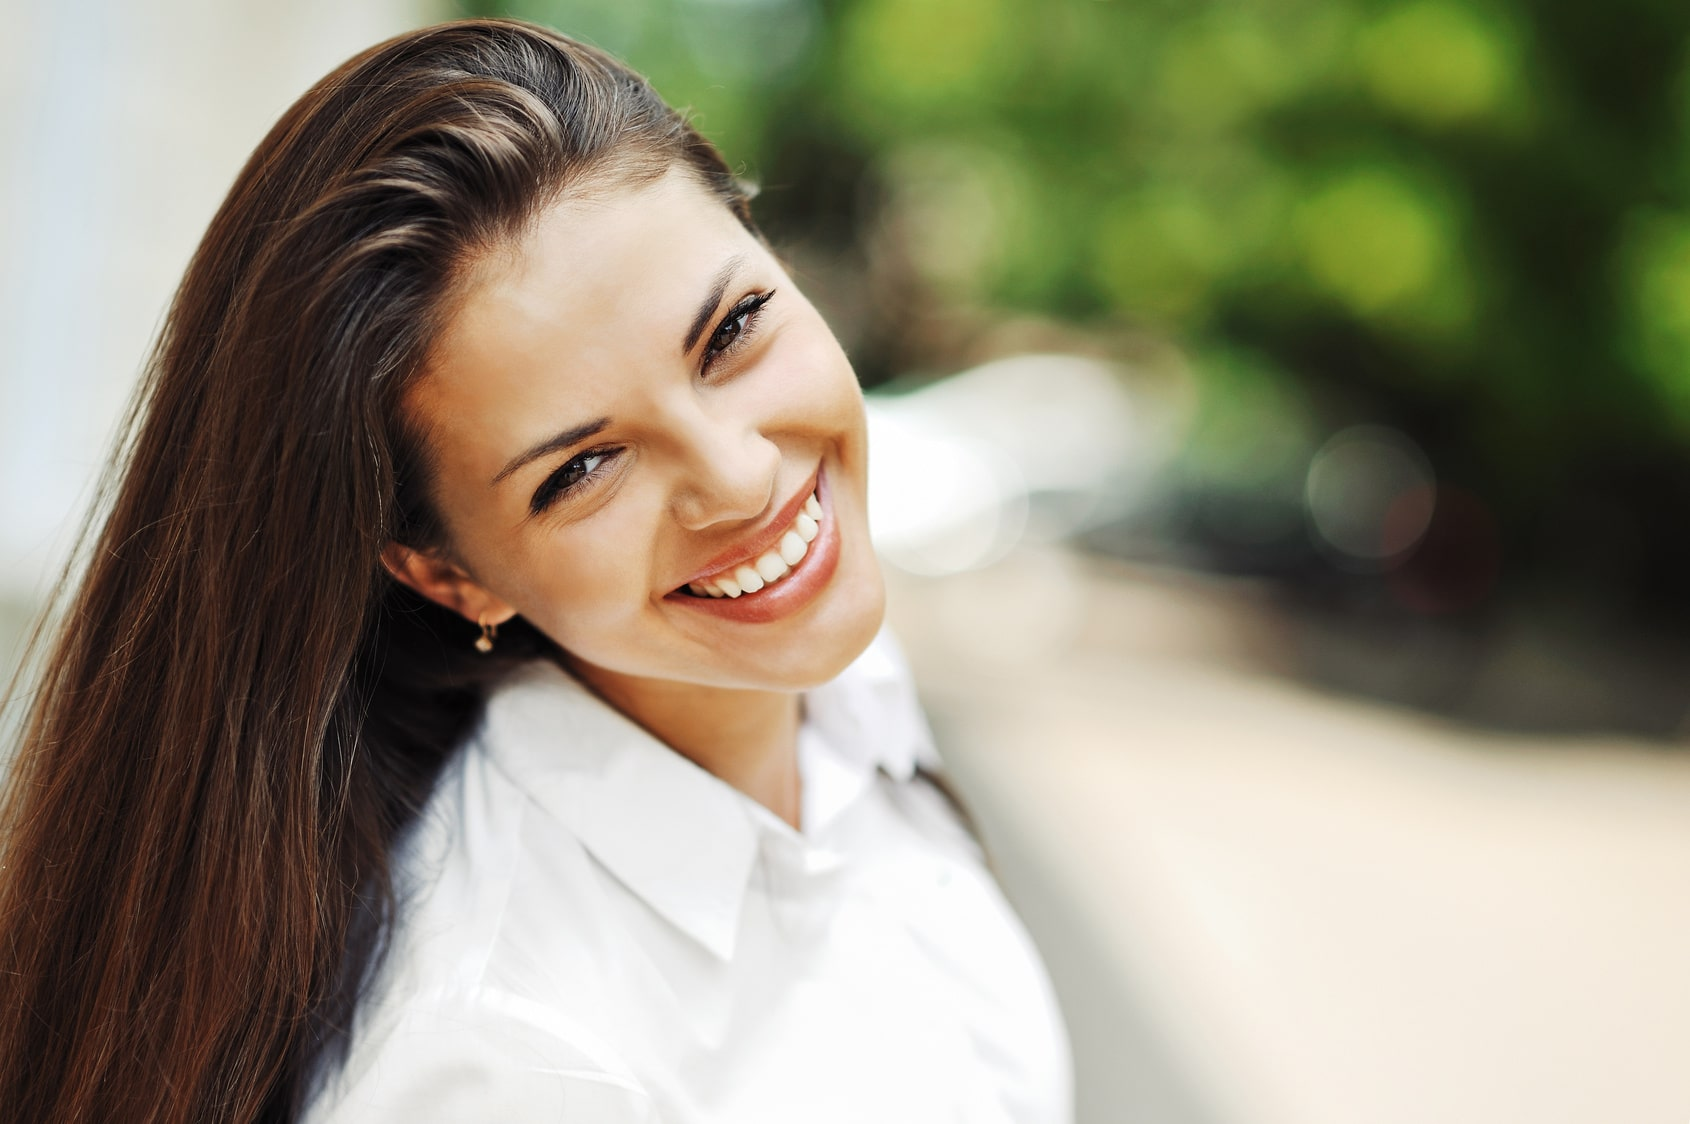 Beautiful and happy woman outside, smiling